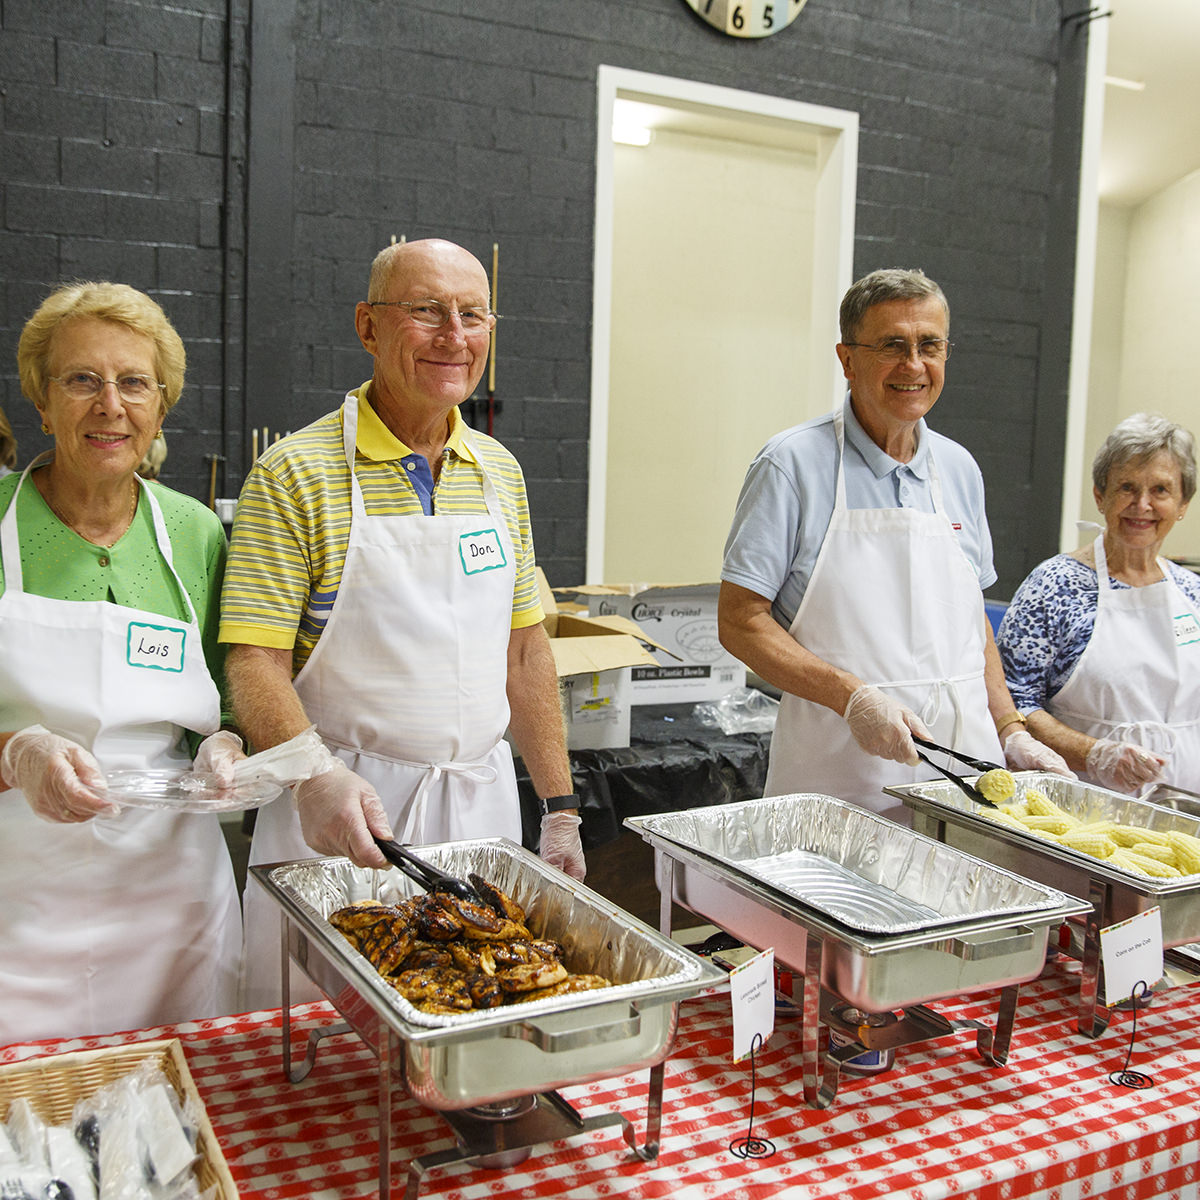 Don & Lois Adrich and Fred & Eileen Eck coordinate a free community meal at CrossNet Youth Center each month.